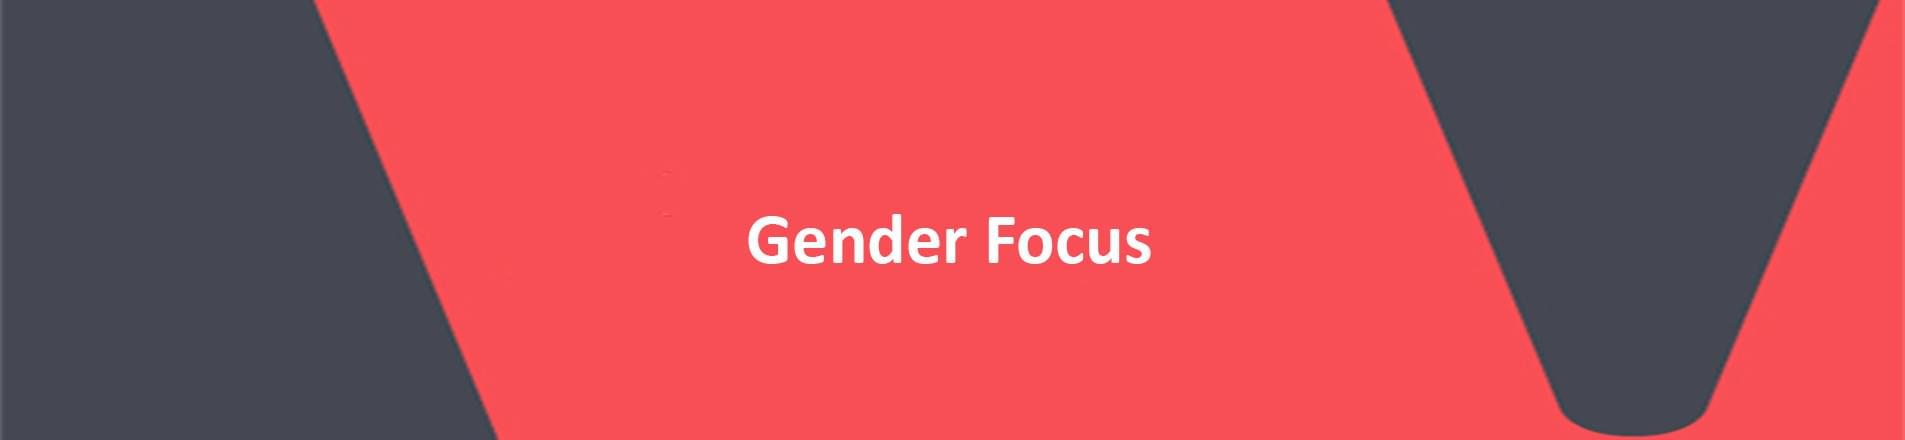 red banner with white text reading Gender Focus